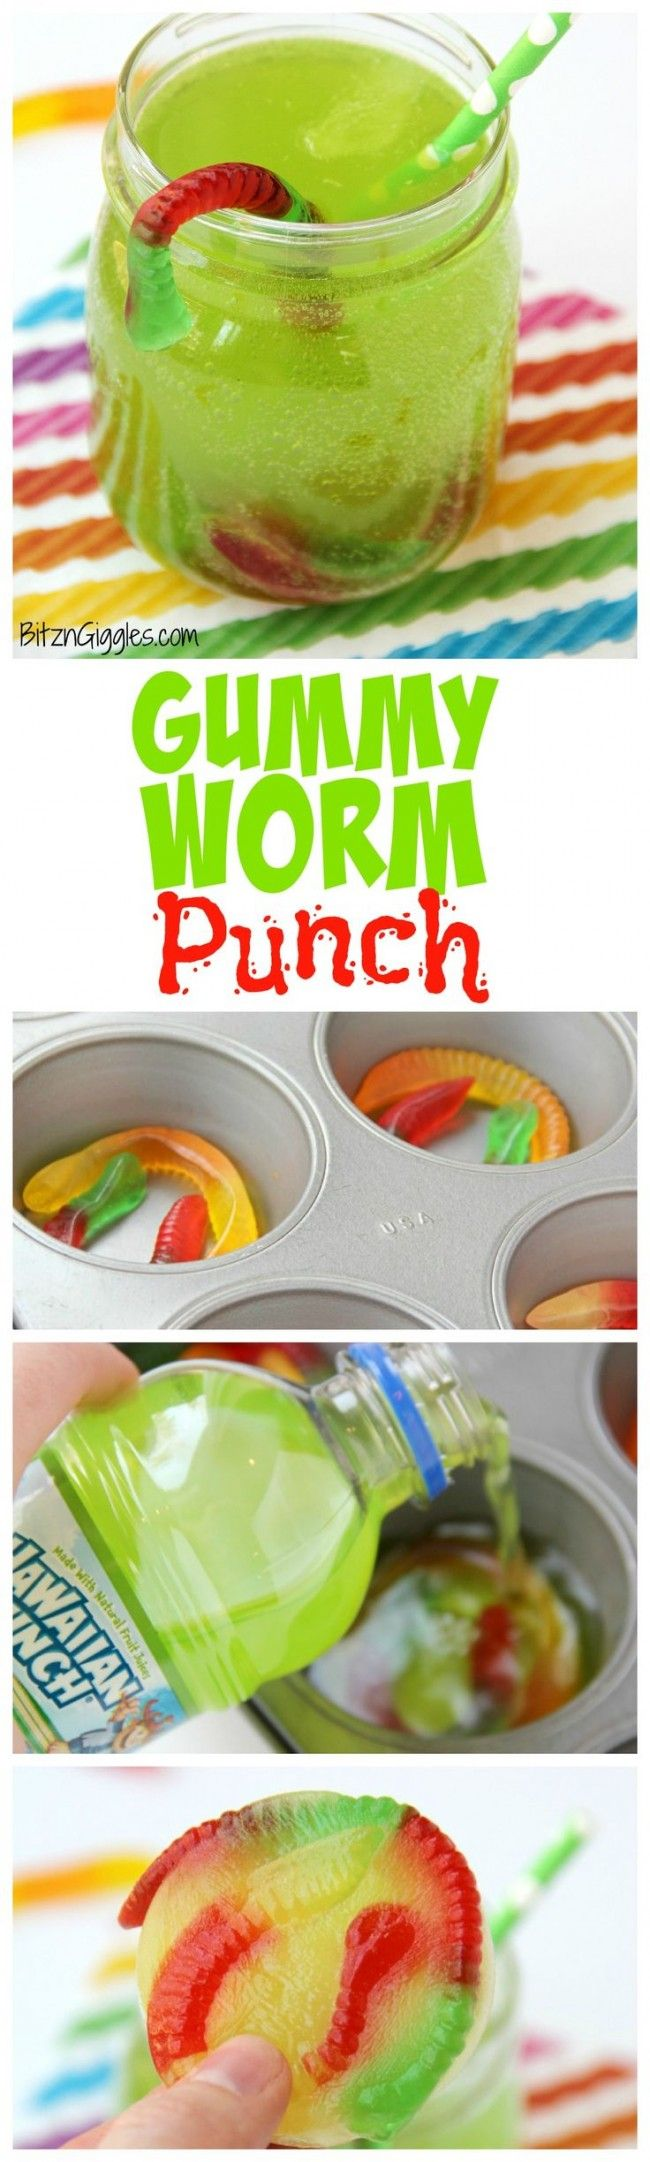 Gummy Worm Punch - Kids will love sipping on this drink in the summer! Great idea for birthday parties, St. Patrick's Day, Halloween and Christmas (Grinch punch) too! Gummy worms are frozen in a punch mixture and emerge from the ice as the drink is enjoyed! So much fun! #gummy